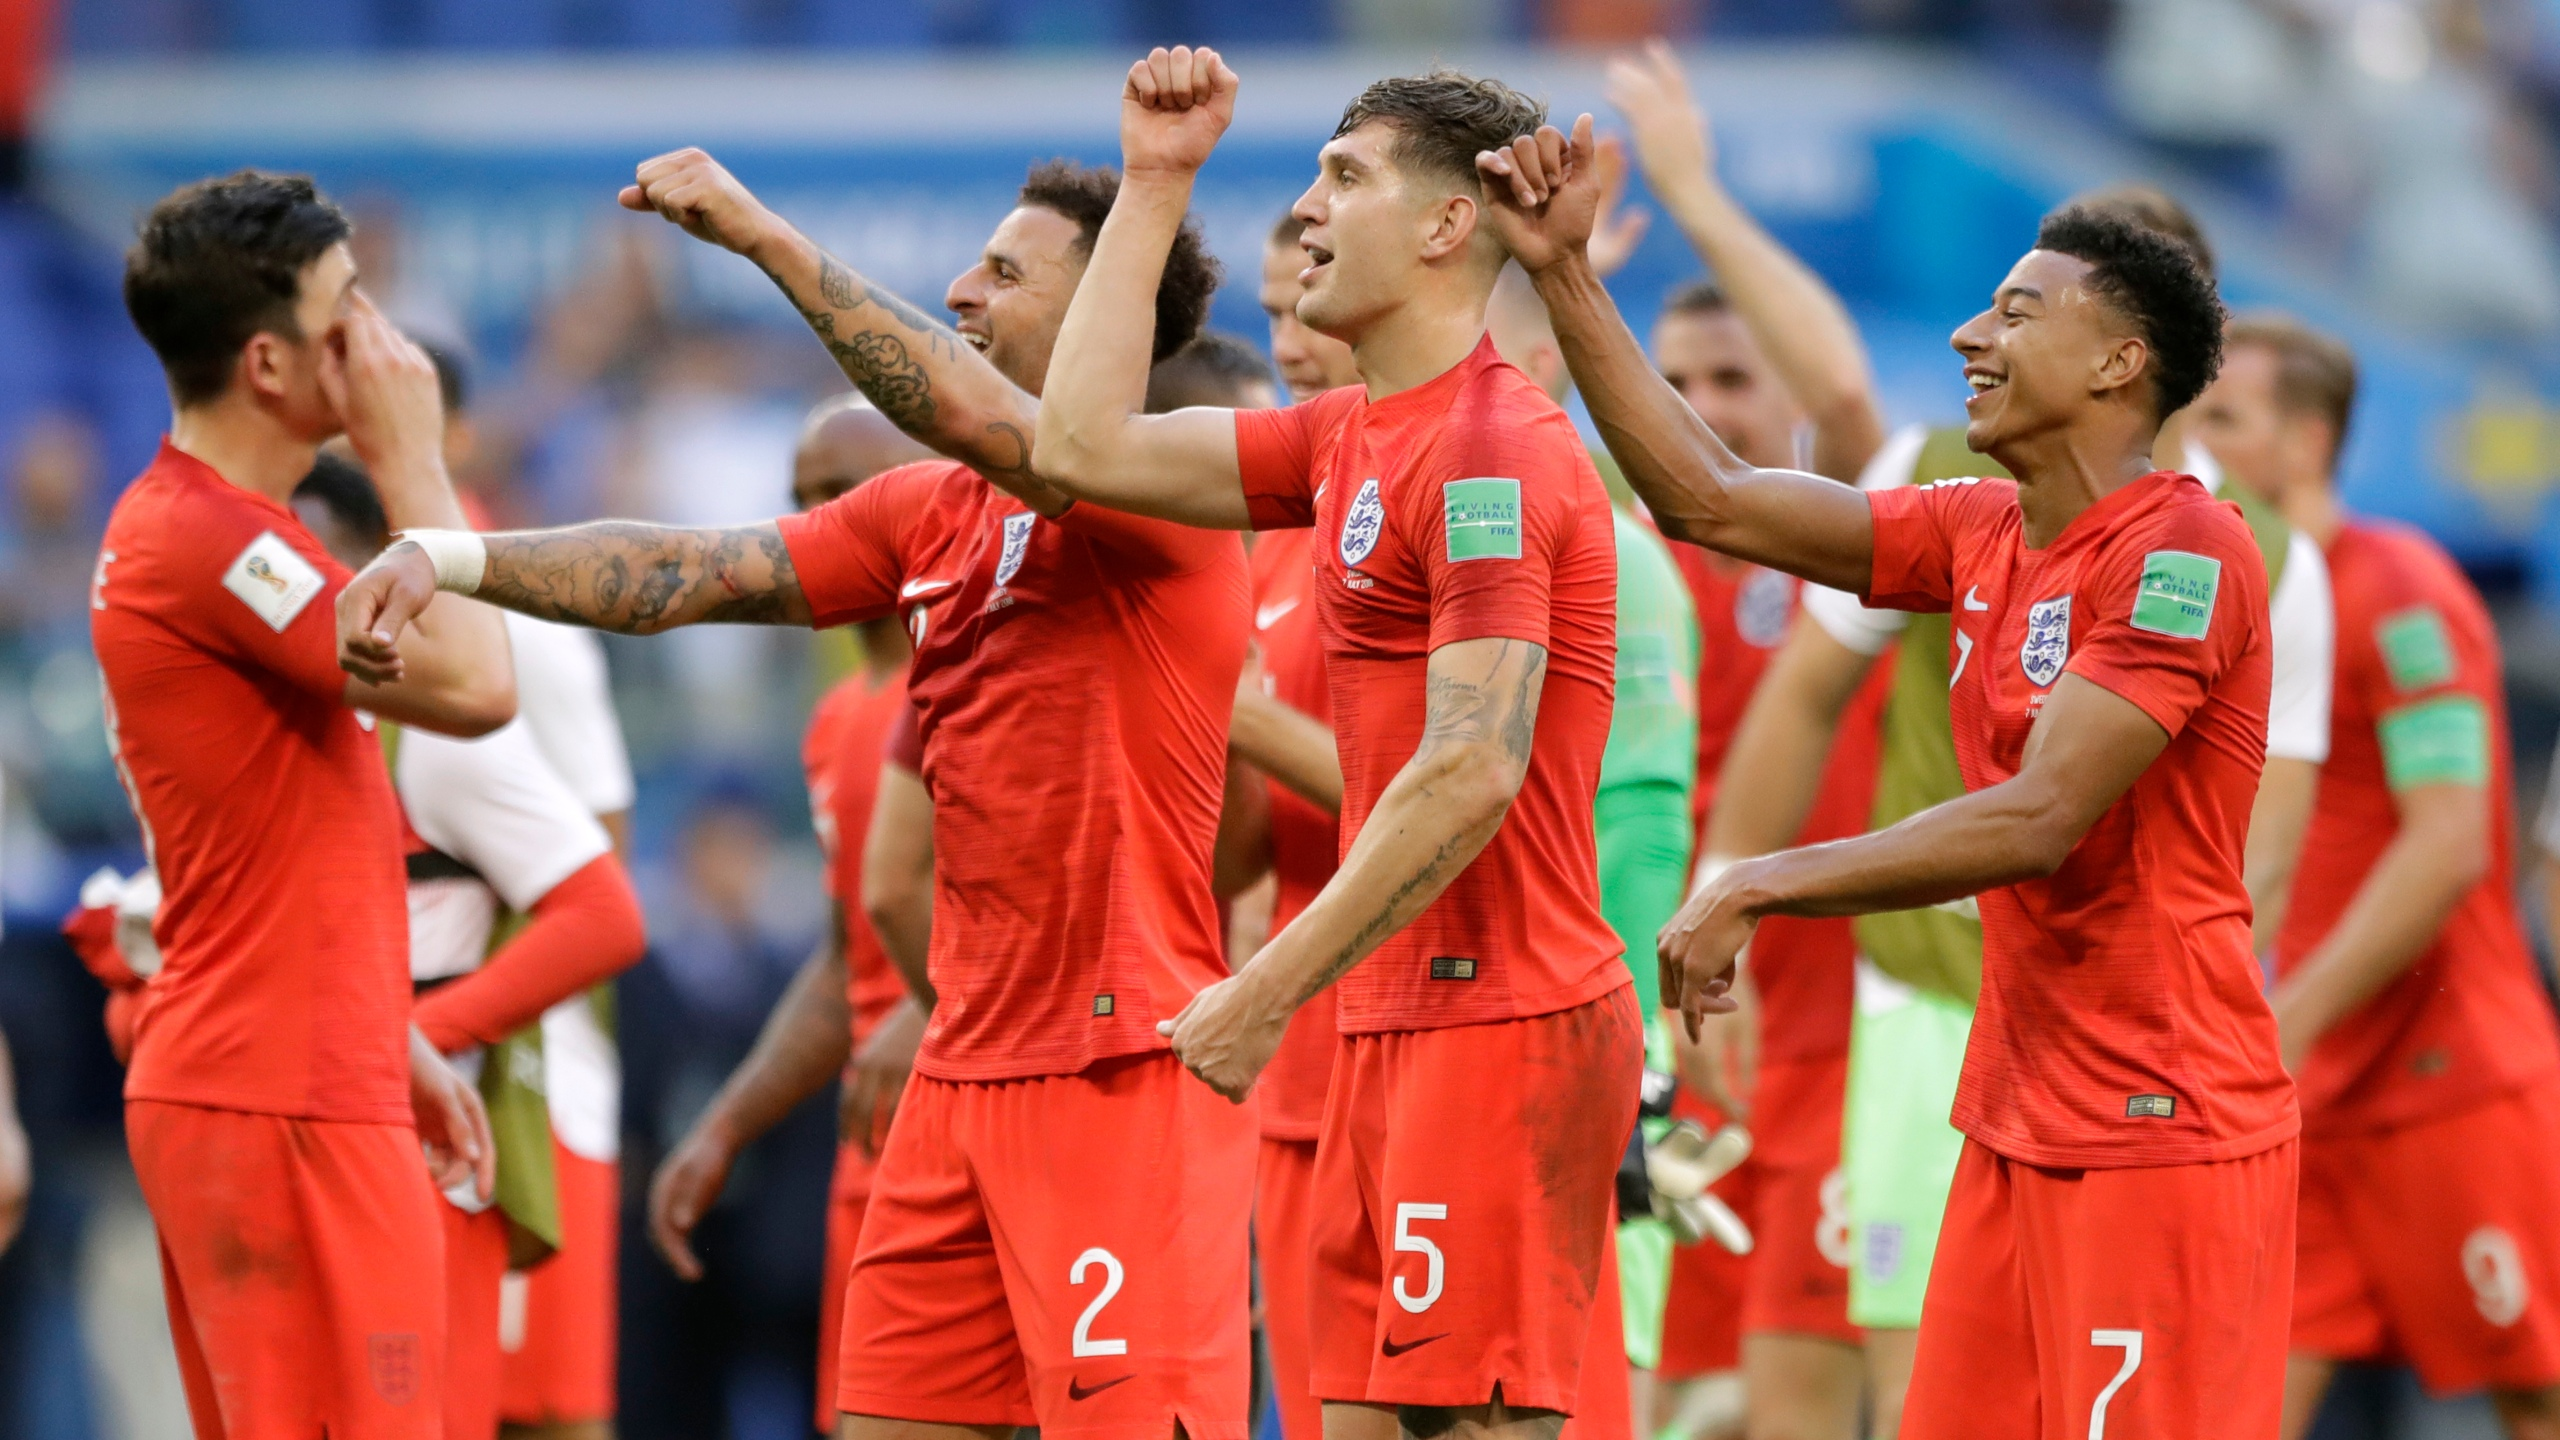 Russia Soccer WCup Sweden England_1531271909122